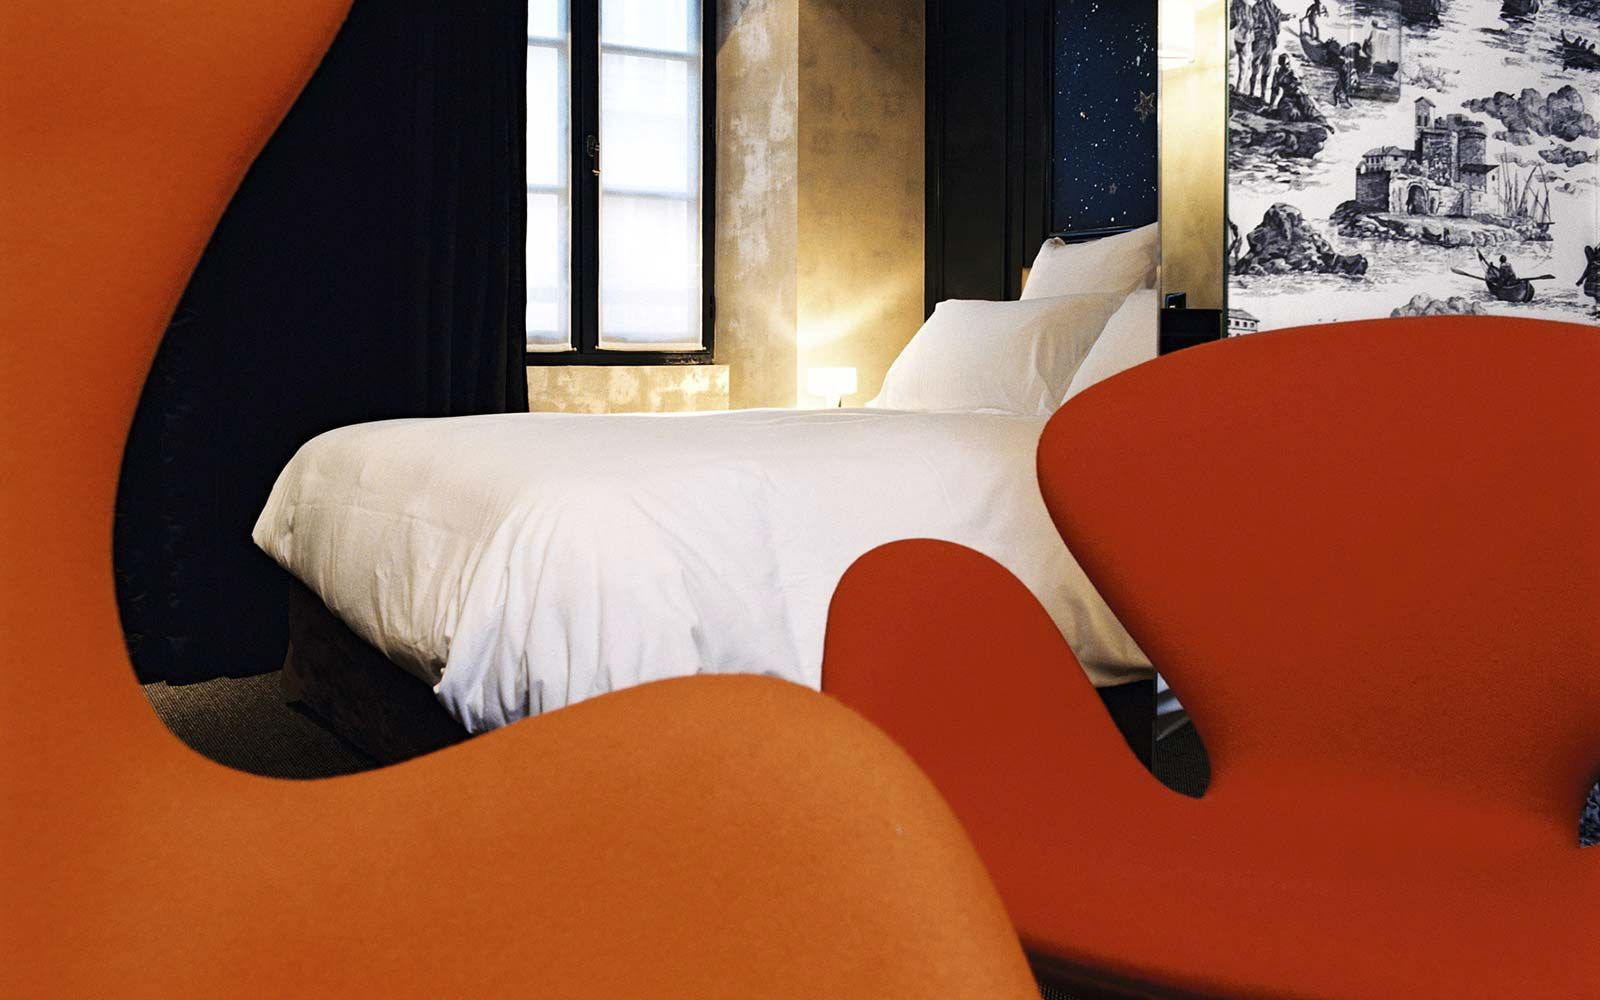 Planning A Luxury stay In Paris? Try The Hotel Petit Moulin (6)